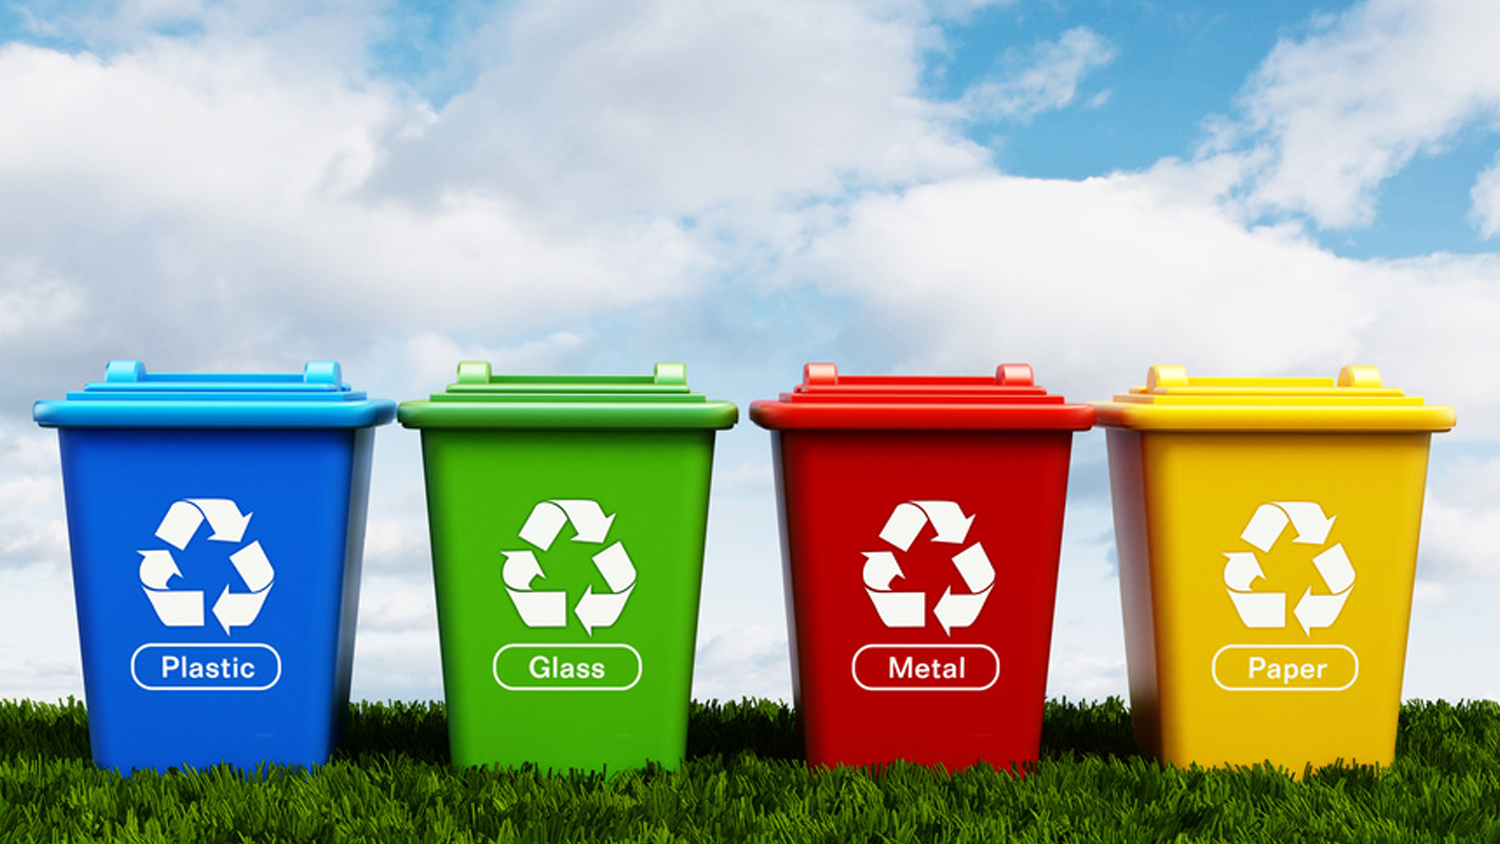 3 STEPS TO BECOMING A ZERO-WASTE HOUSEHOLD